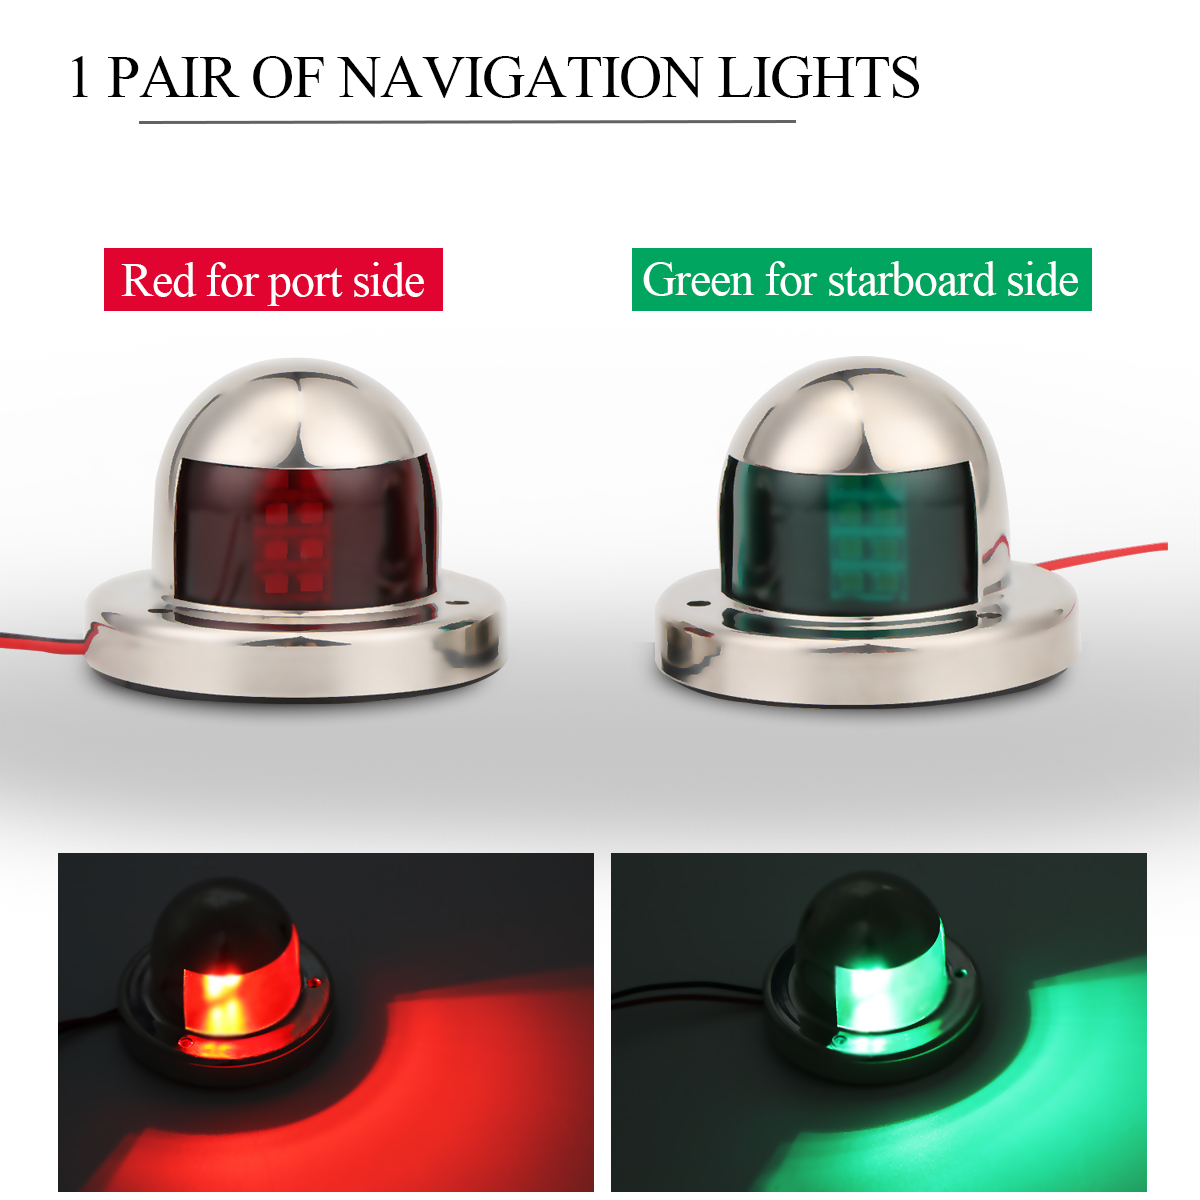 Boat Parts & Accessories Marine Hardware Jeazea 2pcs Dc12v 8w Green Red Marine Navigation Led Light Starboard Port Side Light For Boat Yacht Skeeter